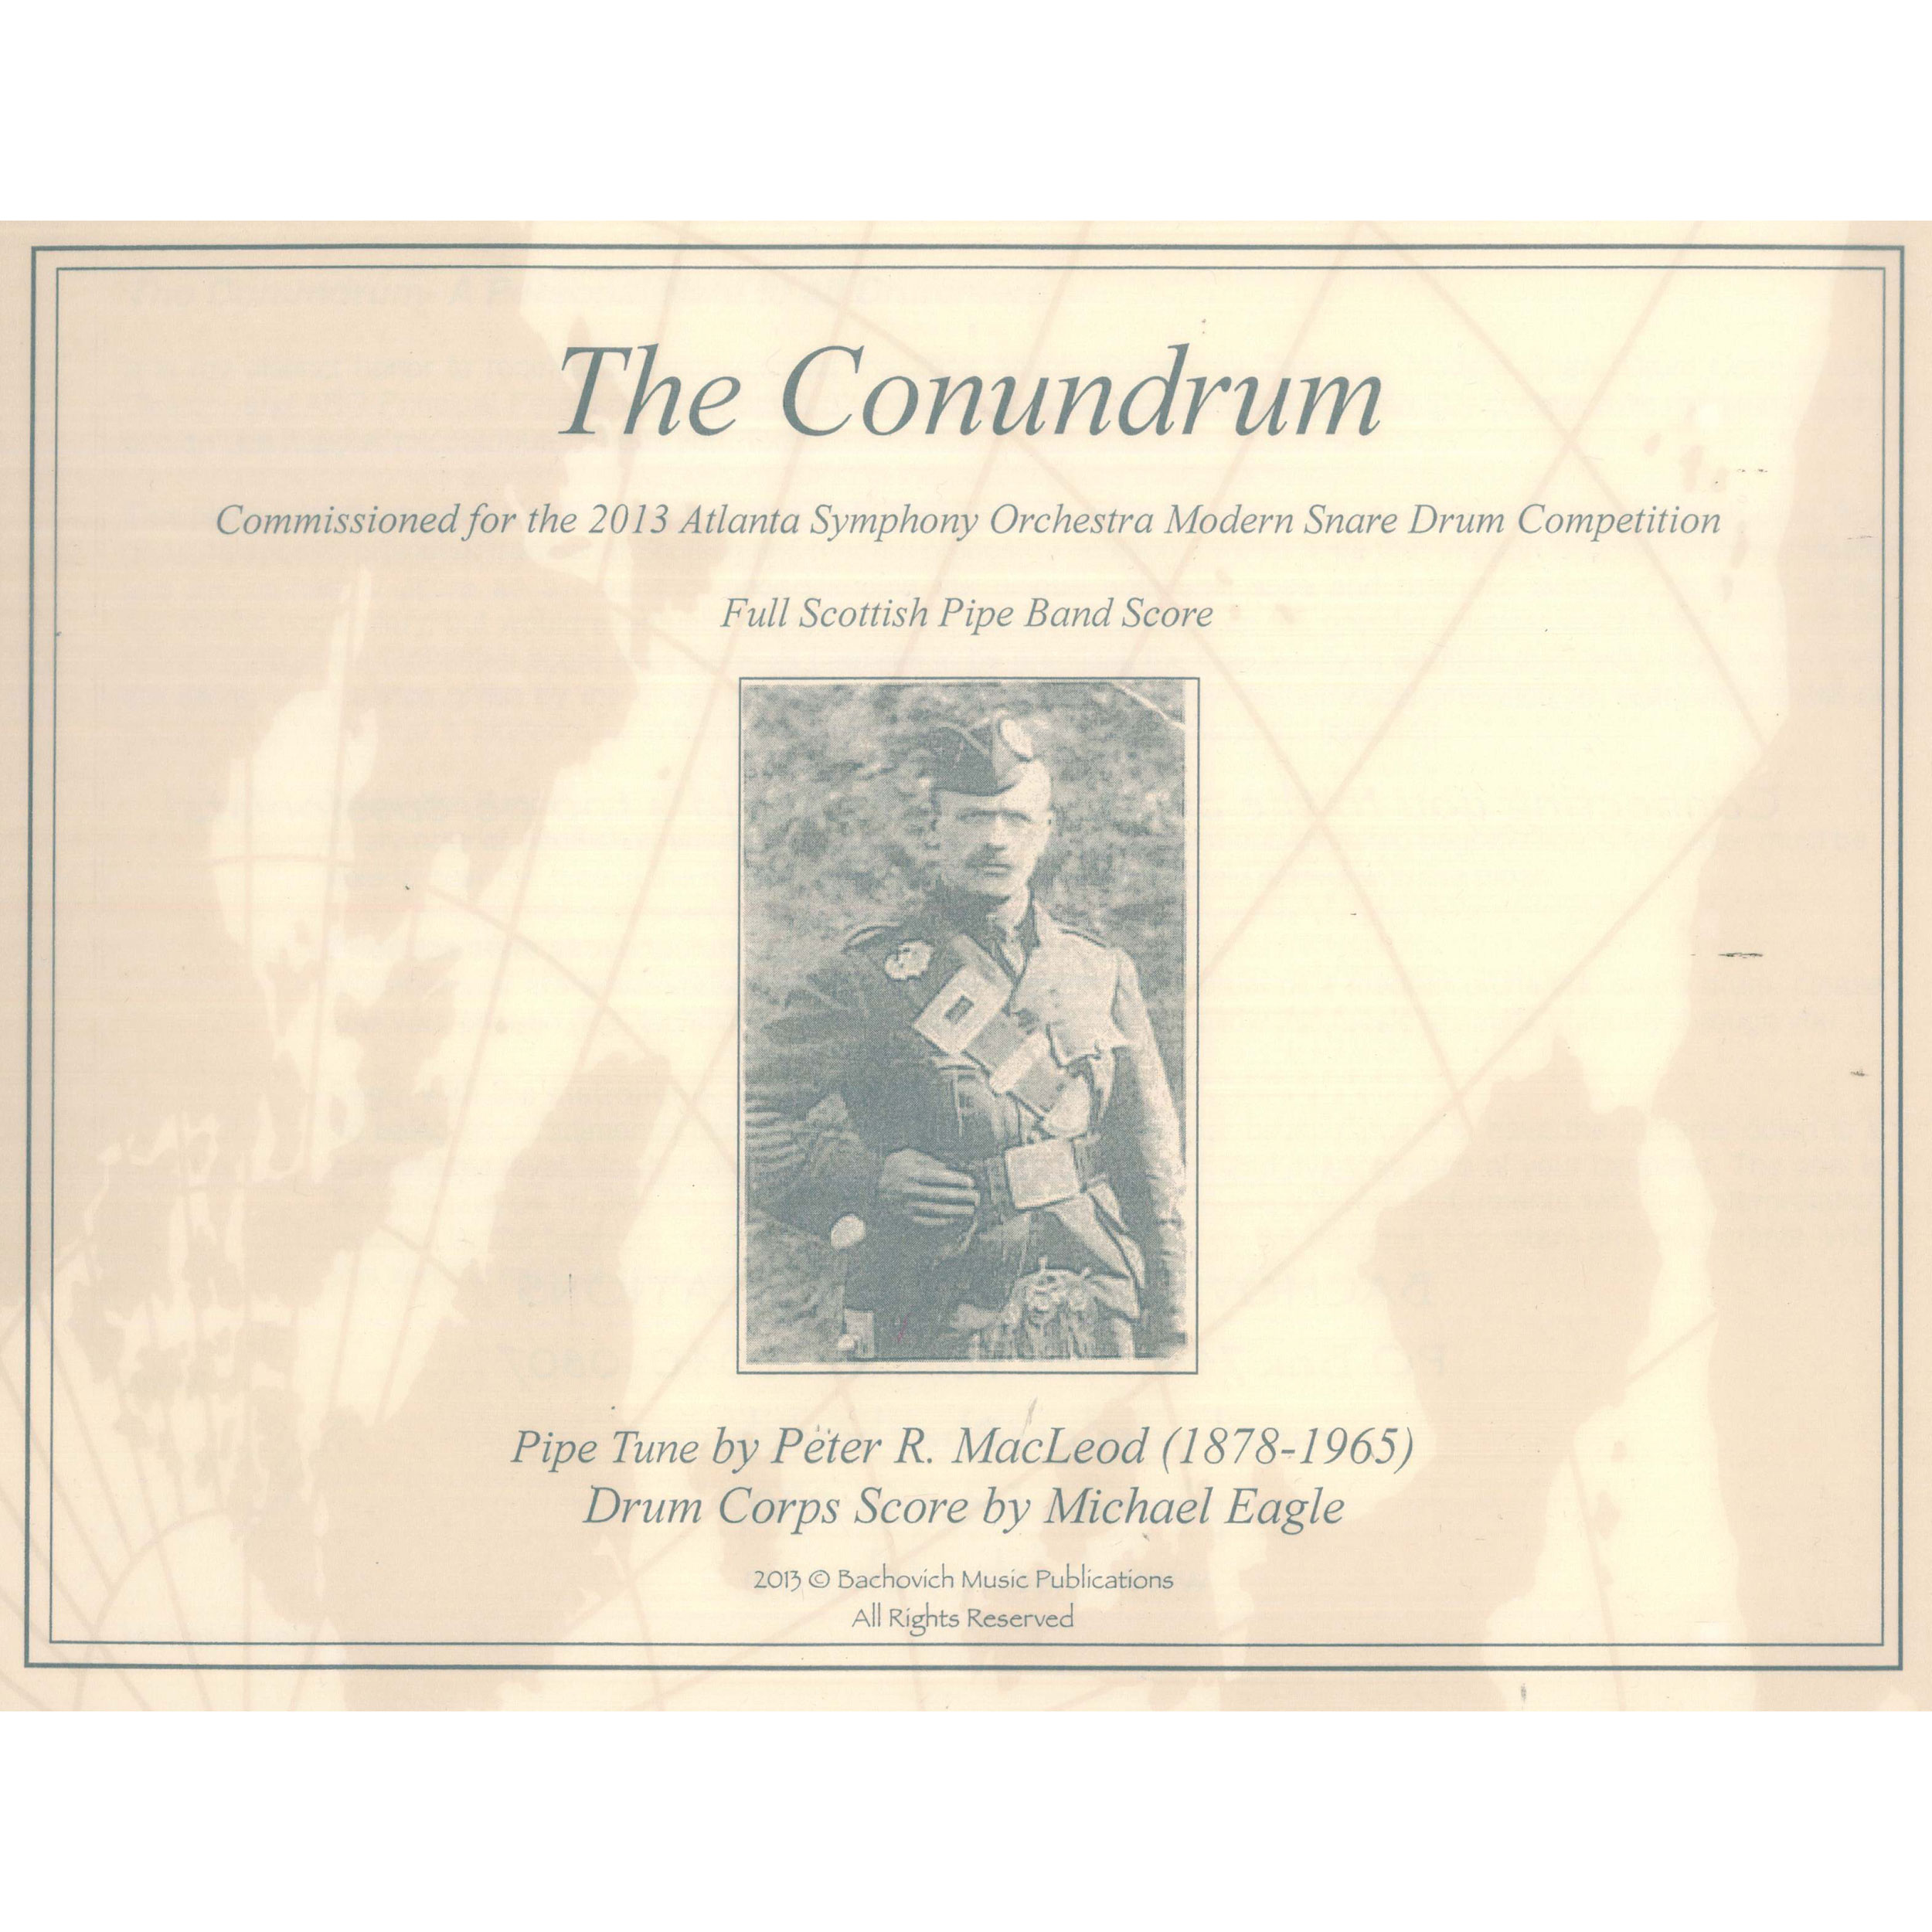 The Conundrum by Michael Eagle